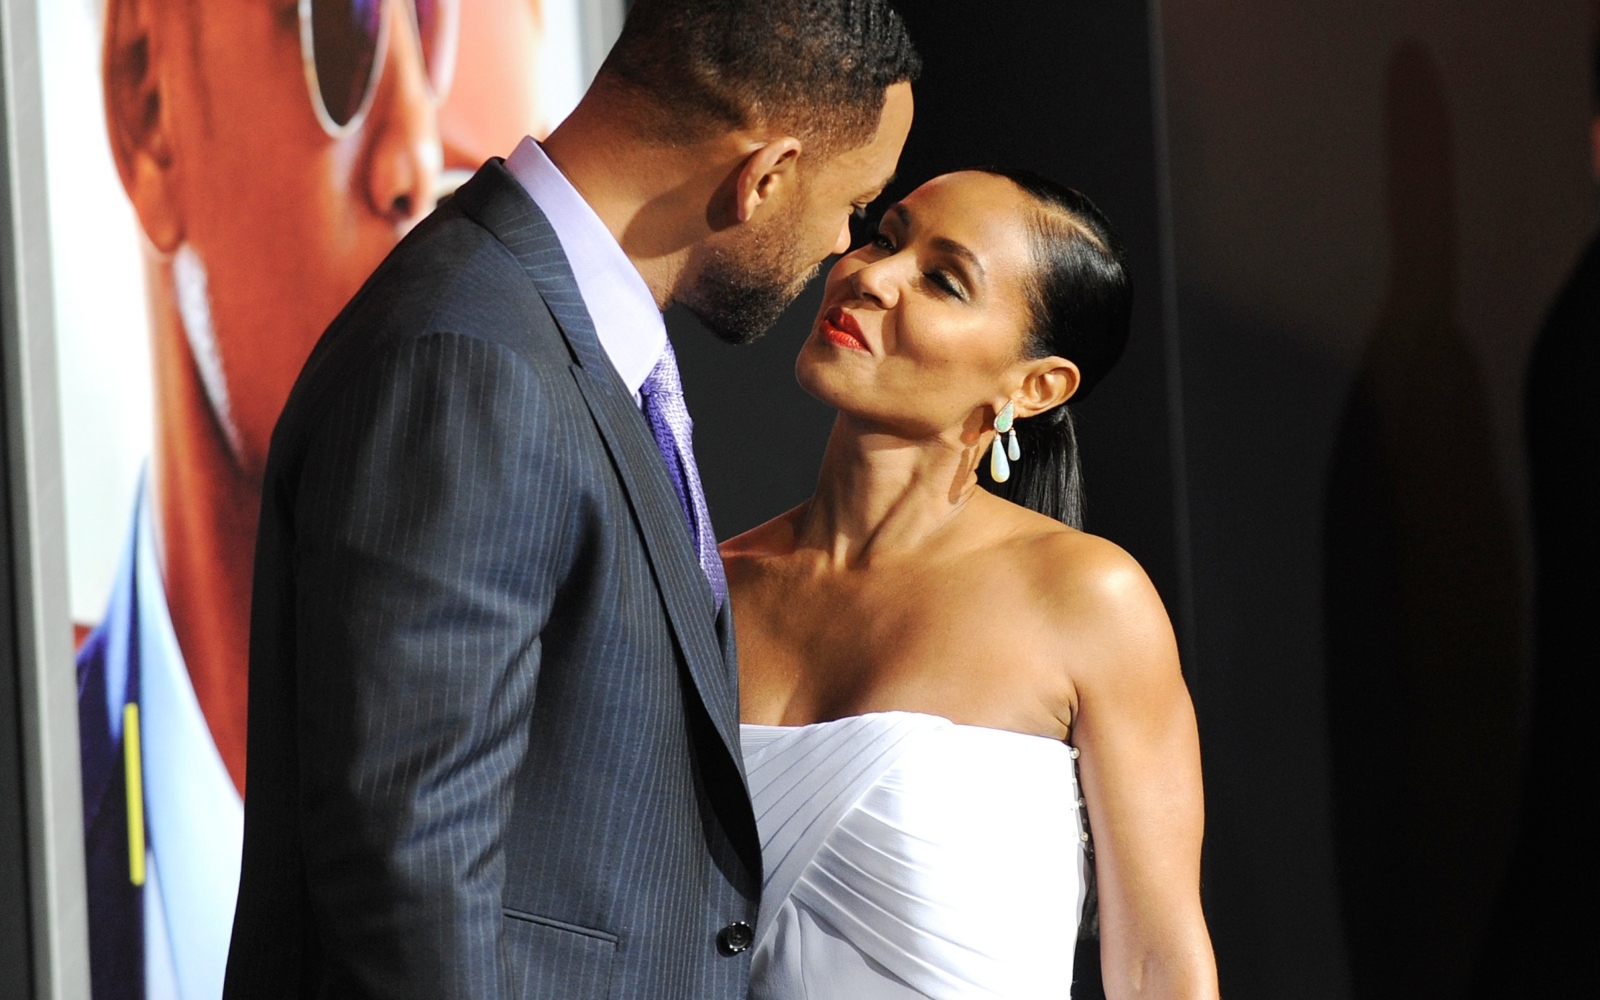 Jada Pinkett Smith și Will Smith au un mariaj deschis